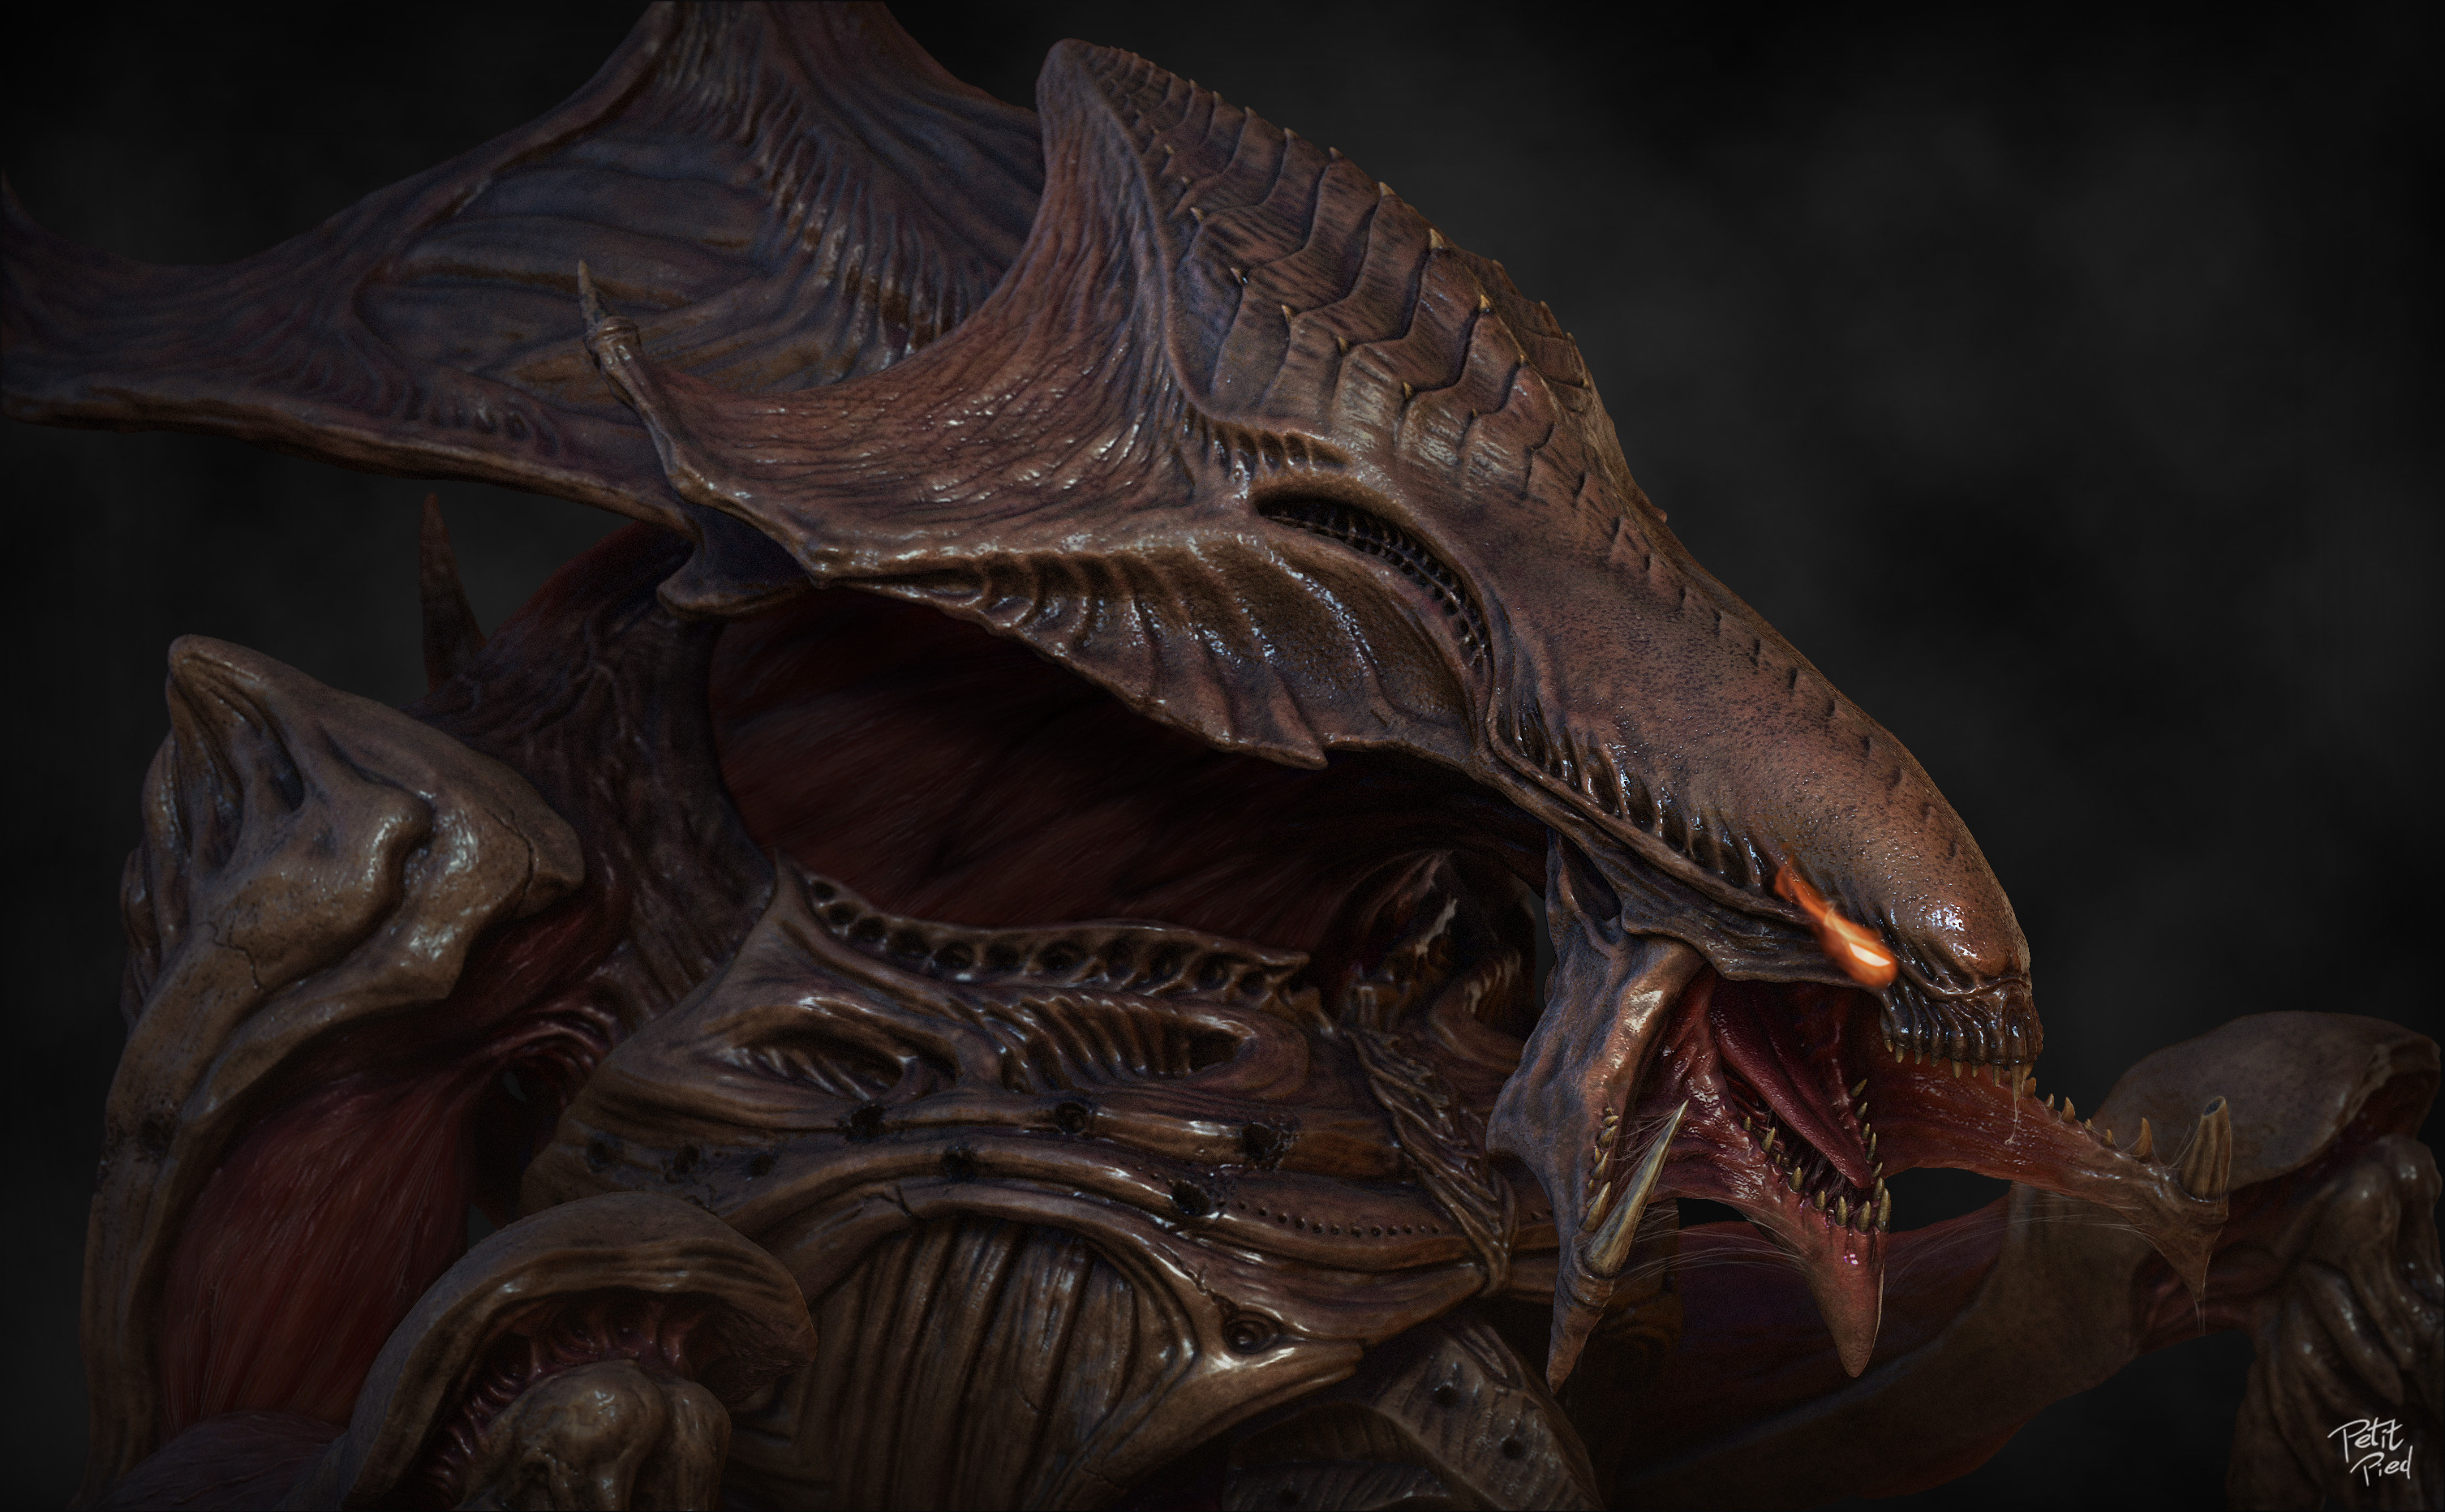 Hydralisk sculpt & render made in Zbrush and Photoshop